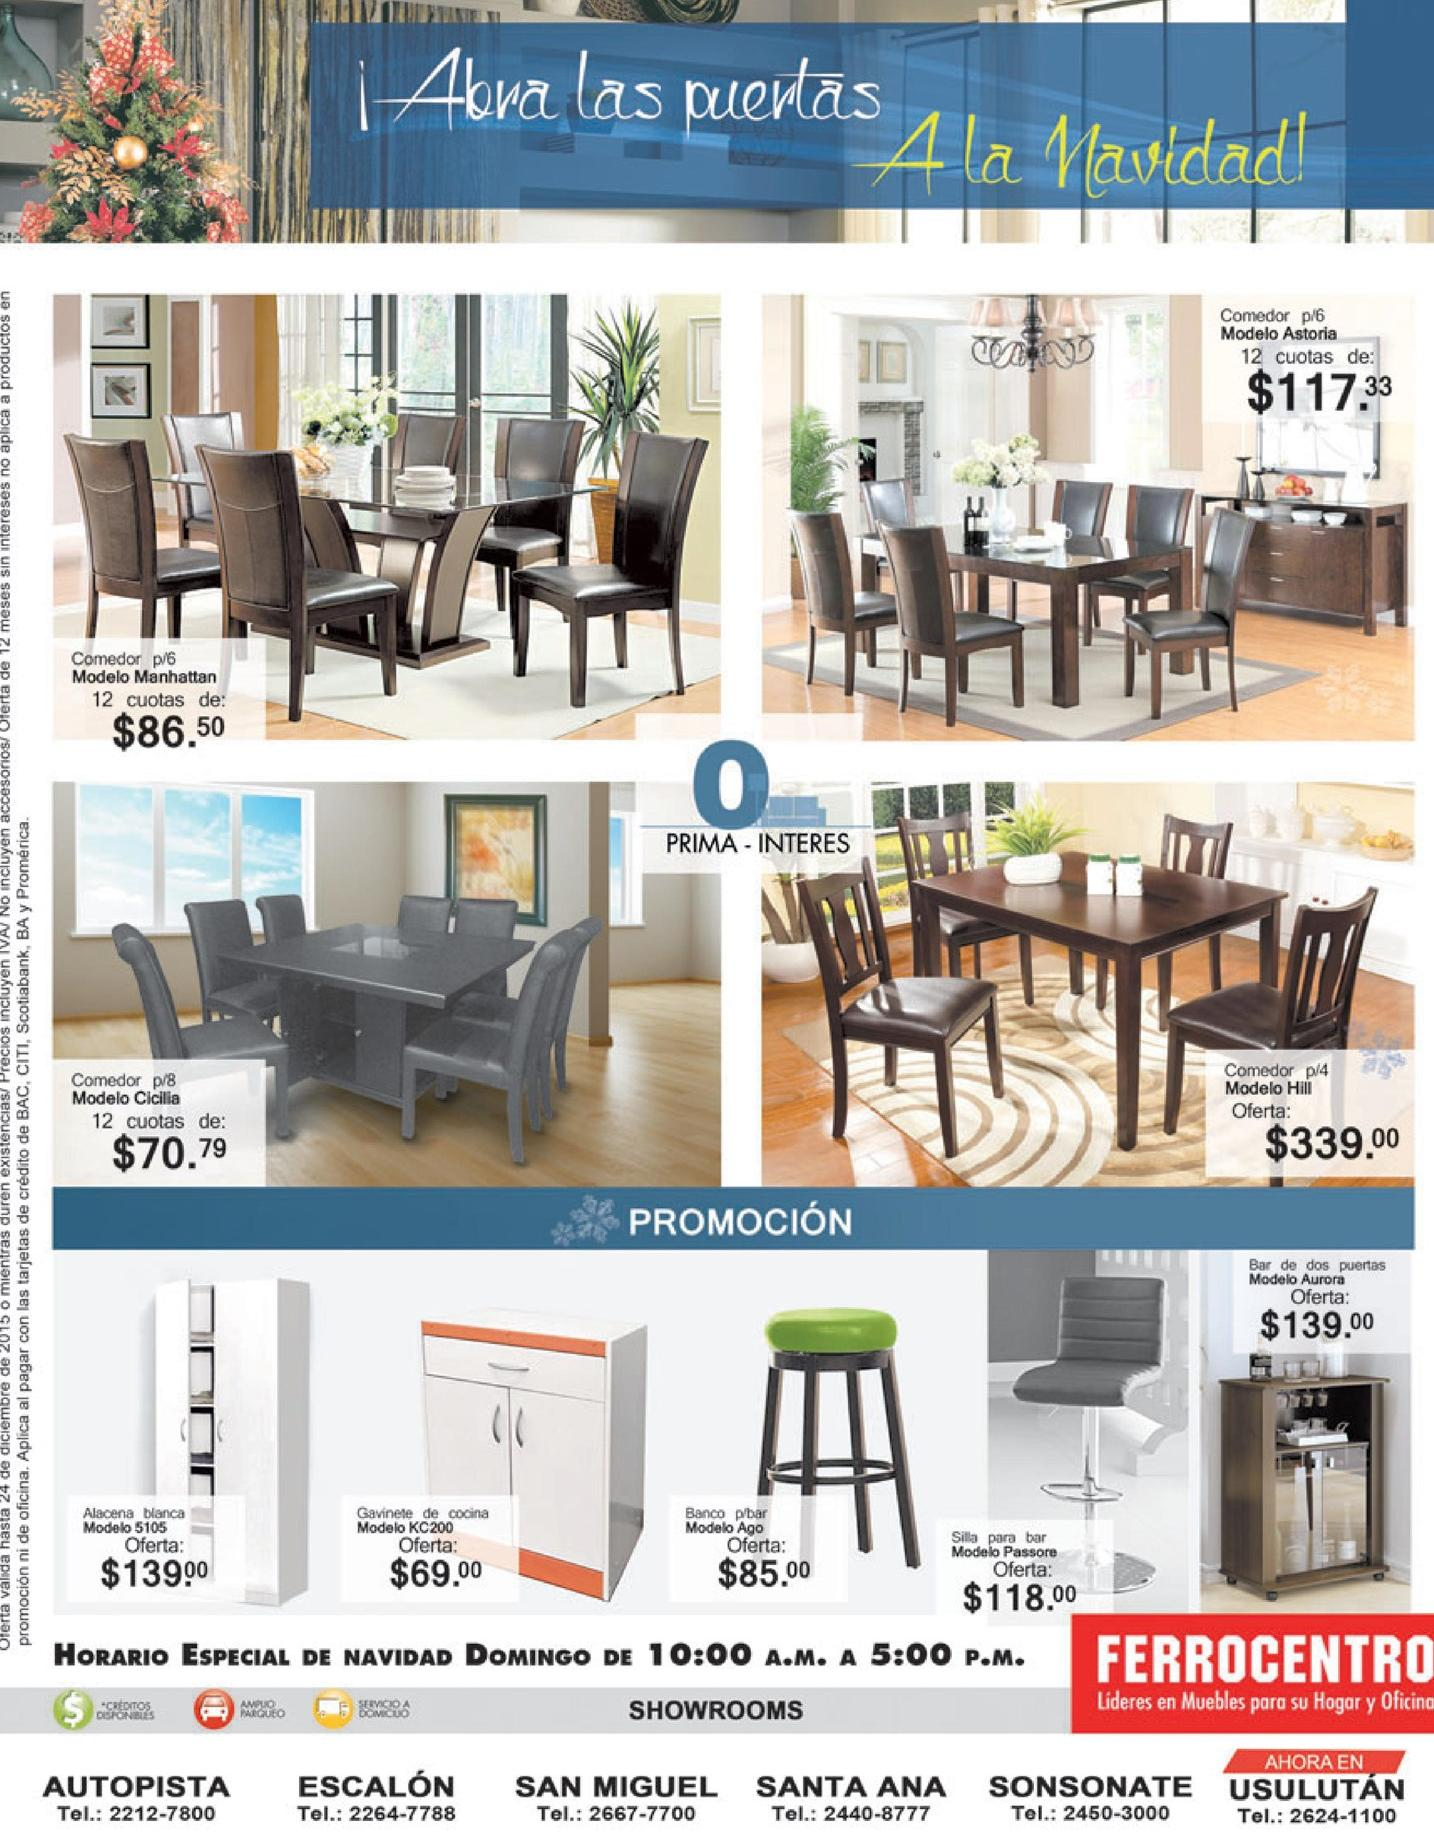 FERROCENTRO exclusive furniture products for this season